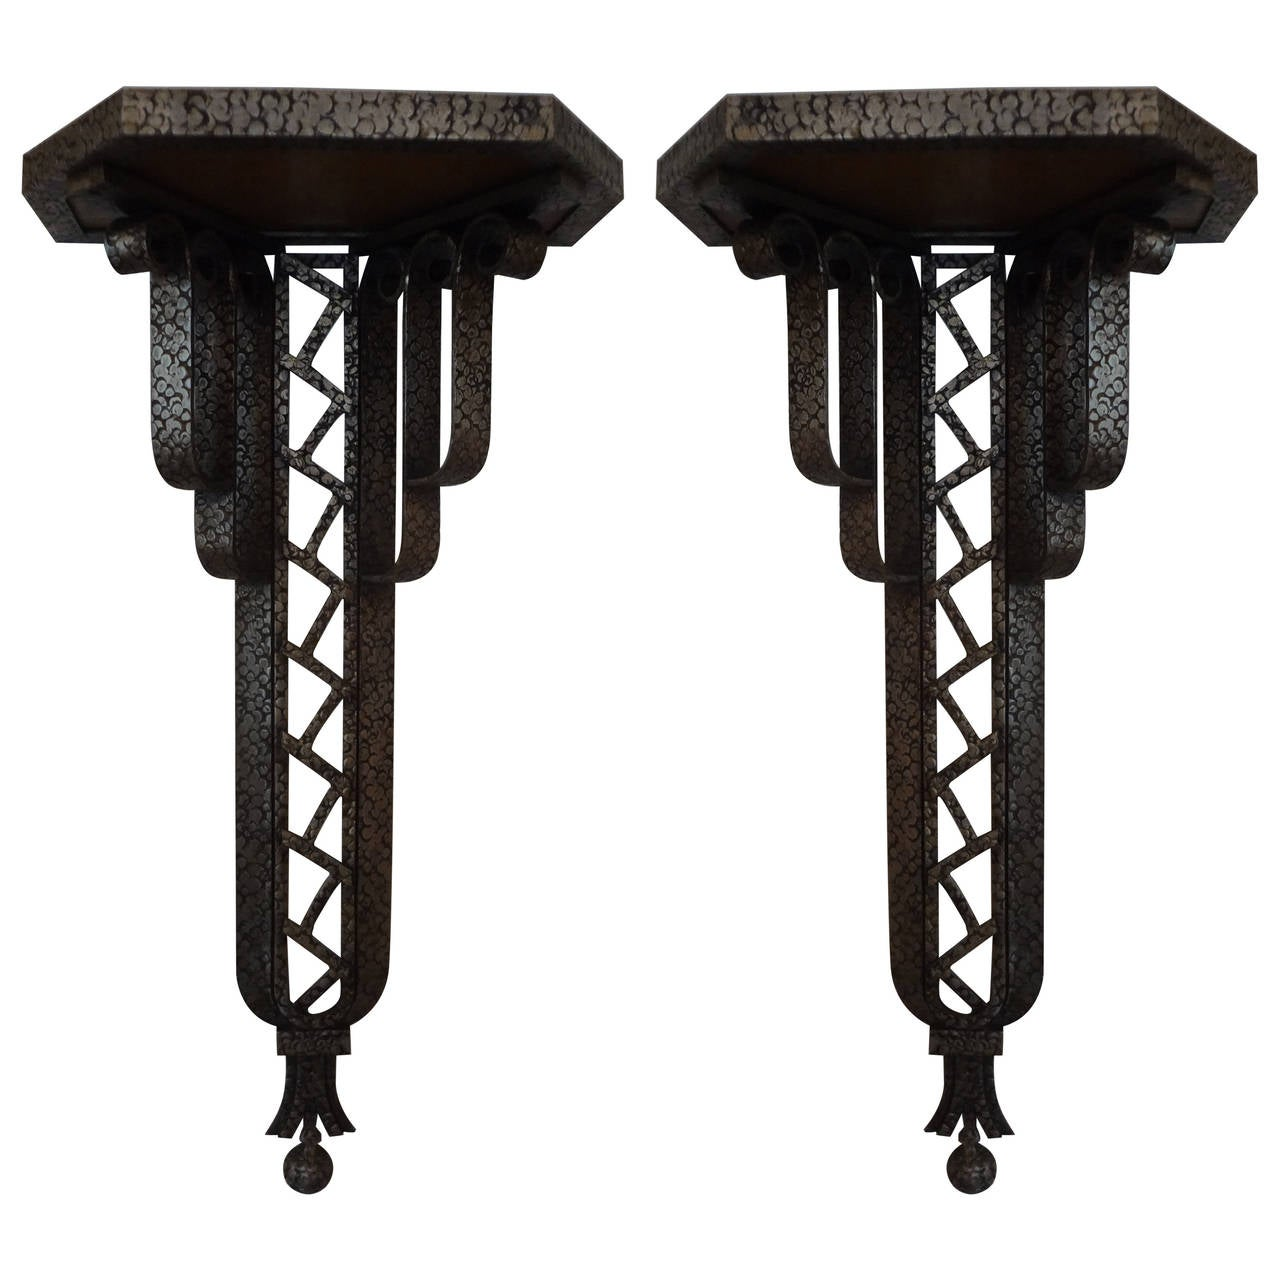 Art Deco Ornamental Ironwork: Large Pair Of Brandt Inspired French Art Deco Wrought Iron